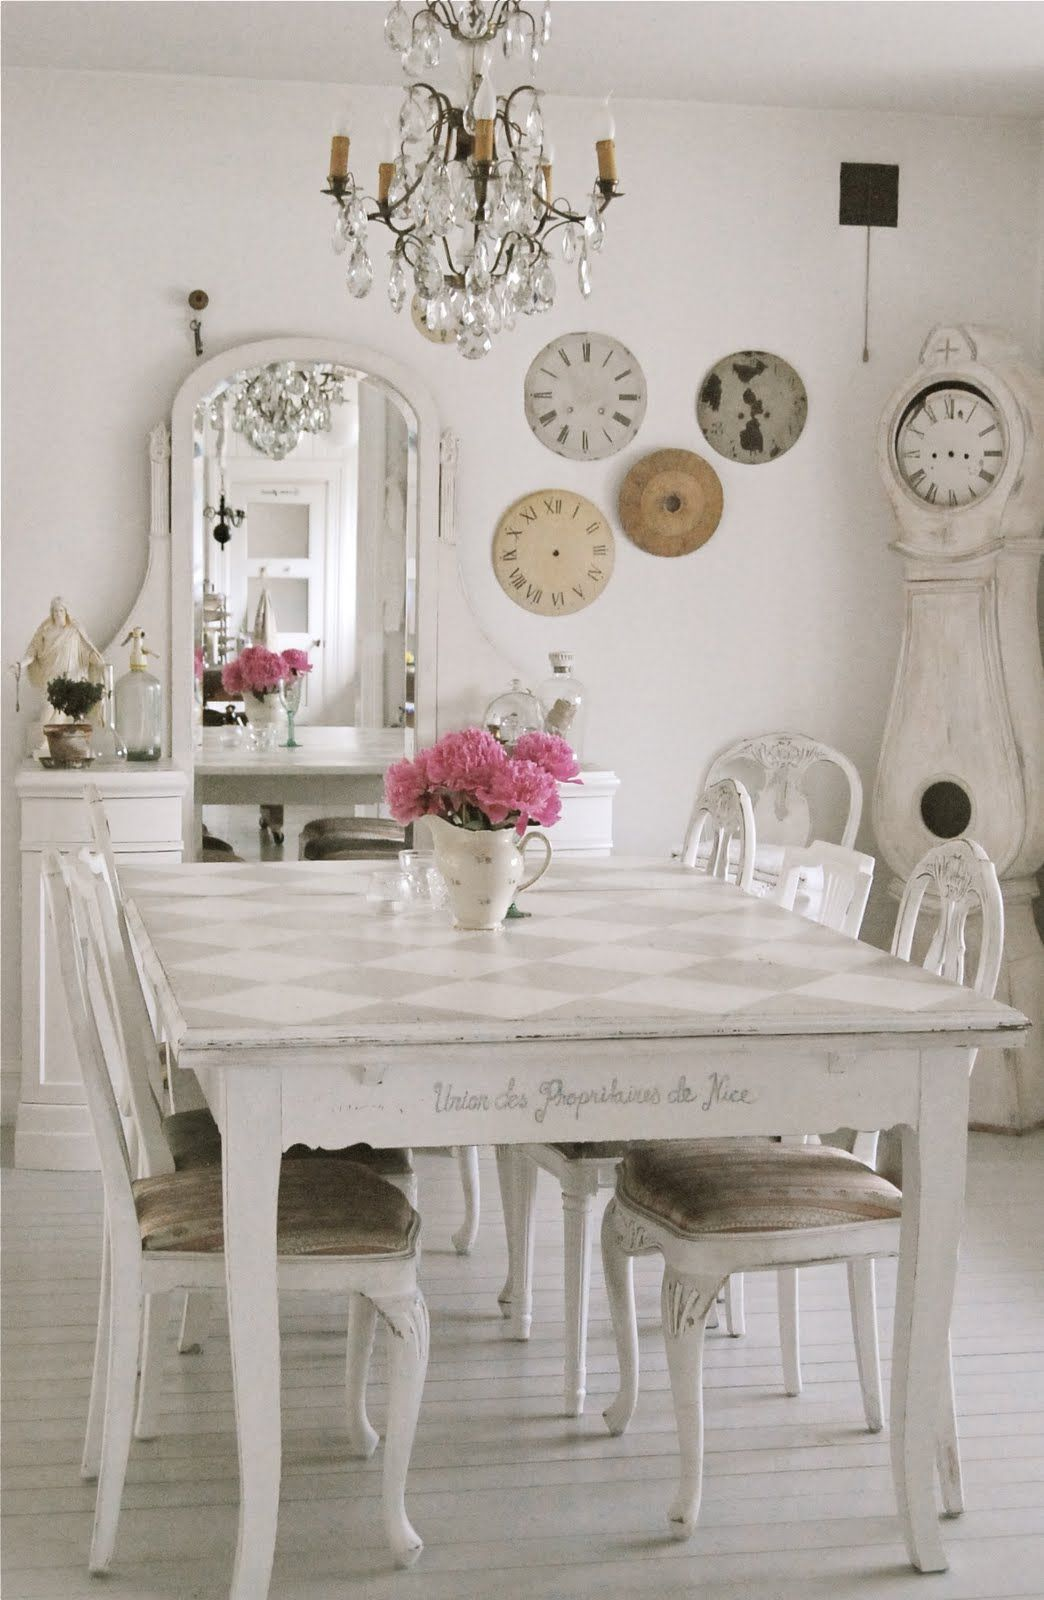 Cottage Flair Shabby Chic Decorating Http Myshabbychicdecor 14